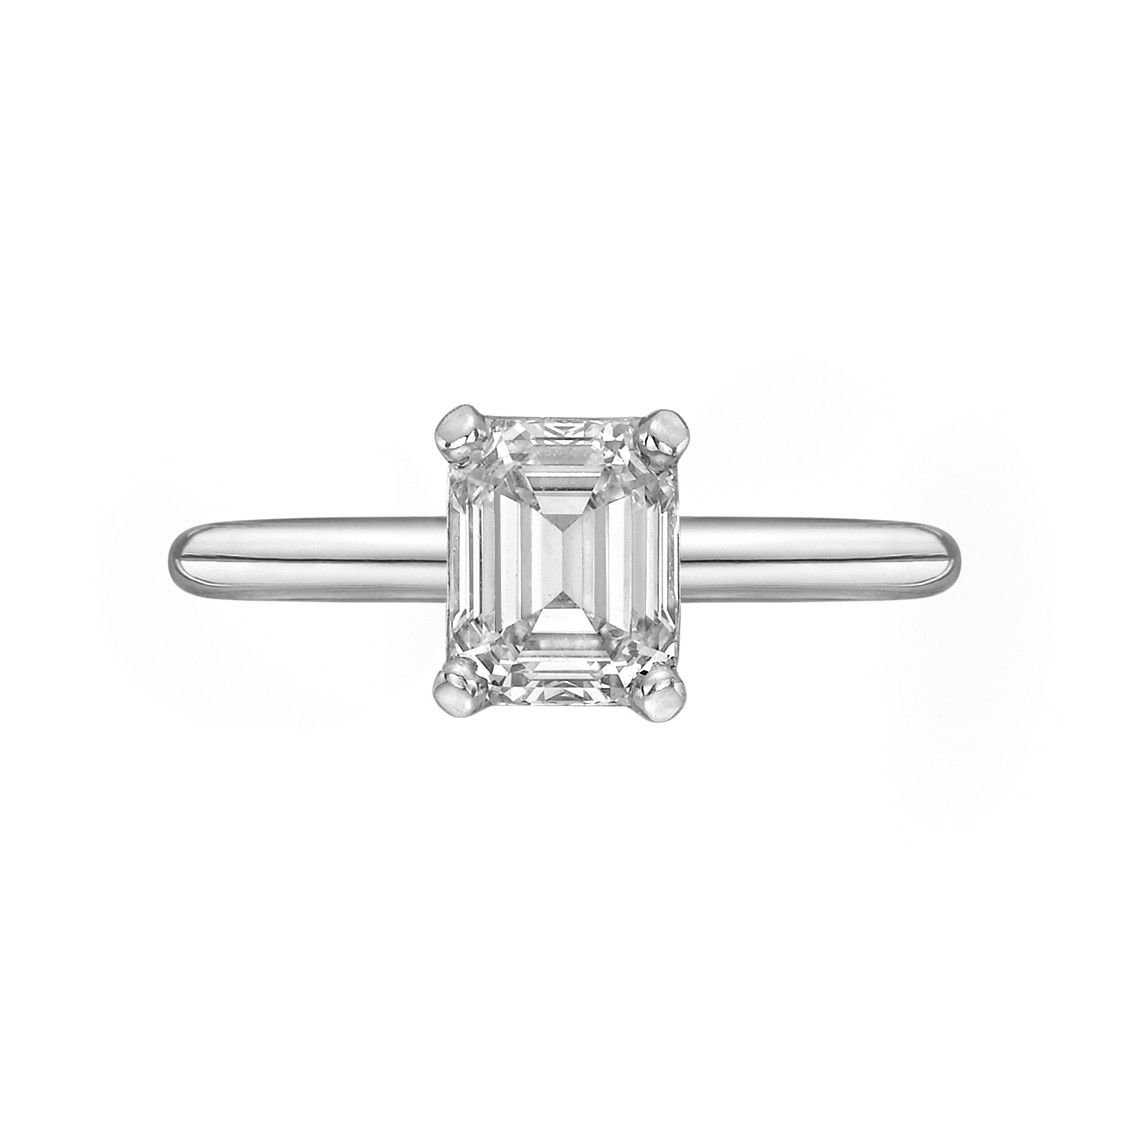 1.05 Carat Emerald-Cut Diamond Ring